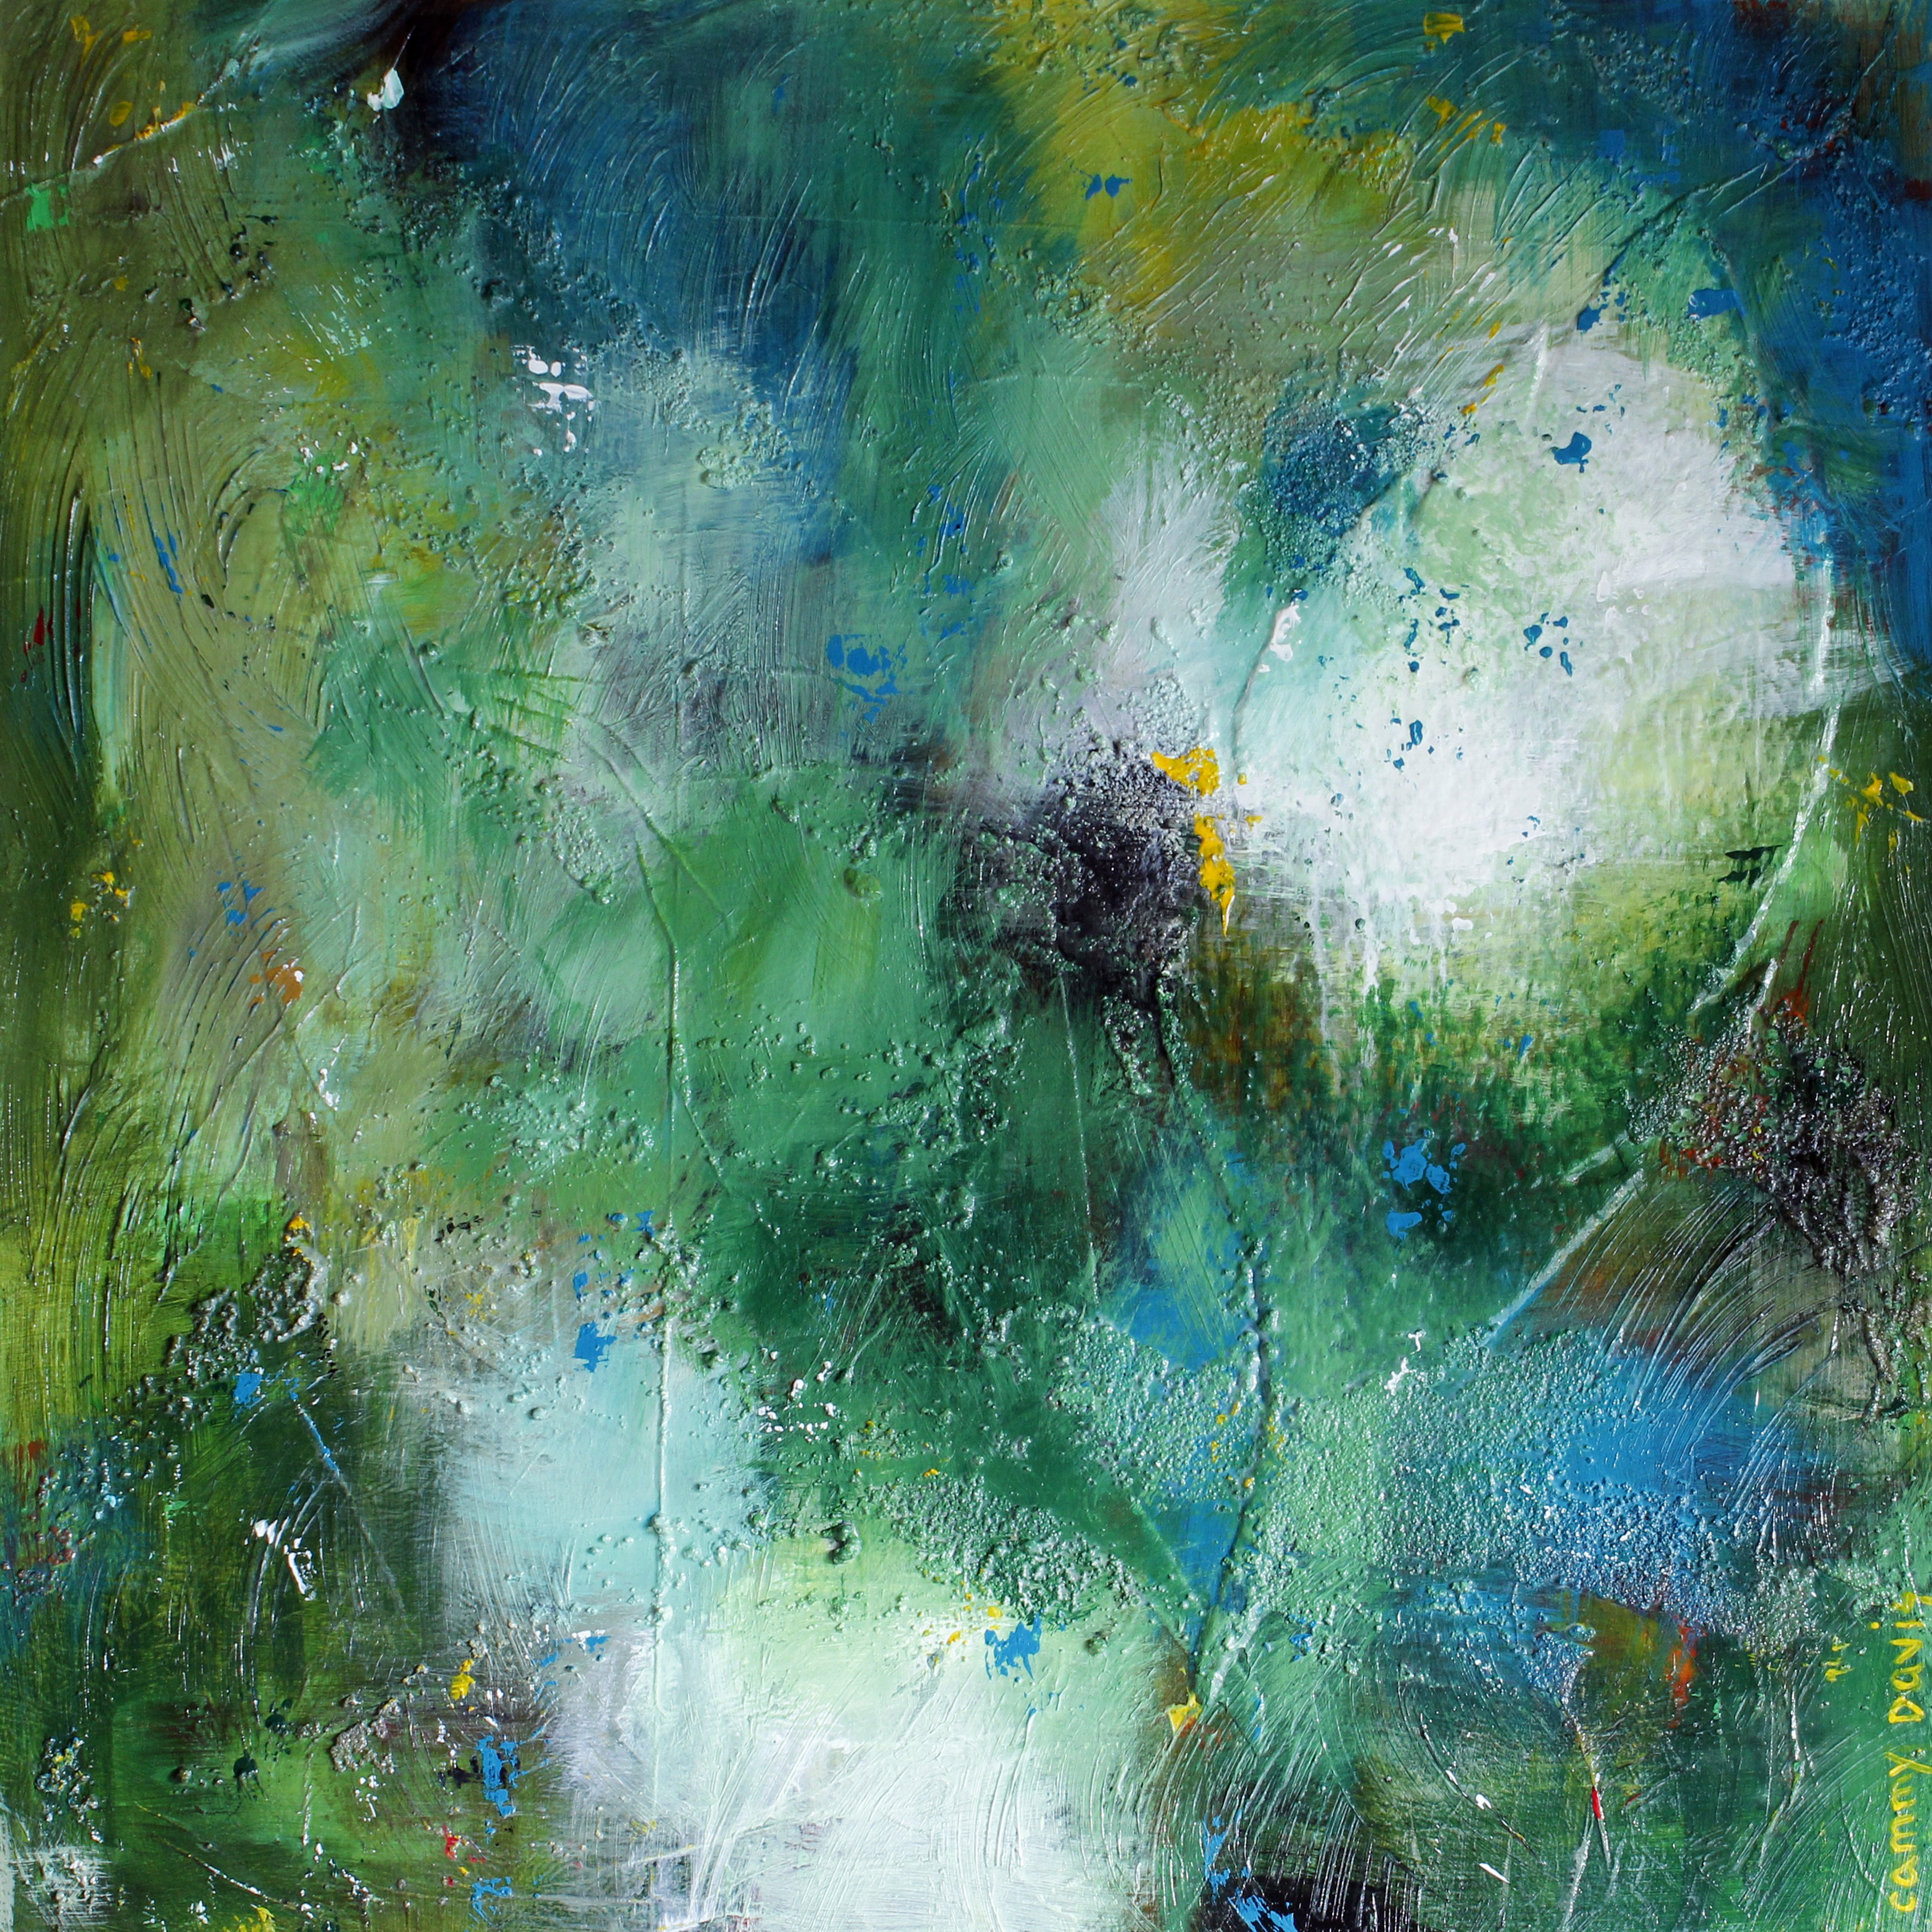 Abstract, Contemporary Art, Oregon Artist, Blue, Green, Loose Brushstrokes, Texture